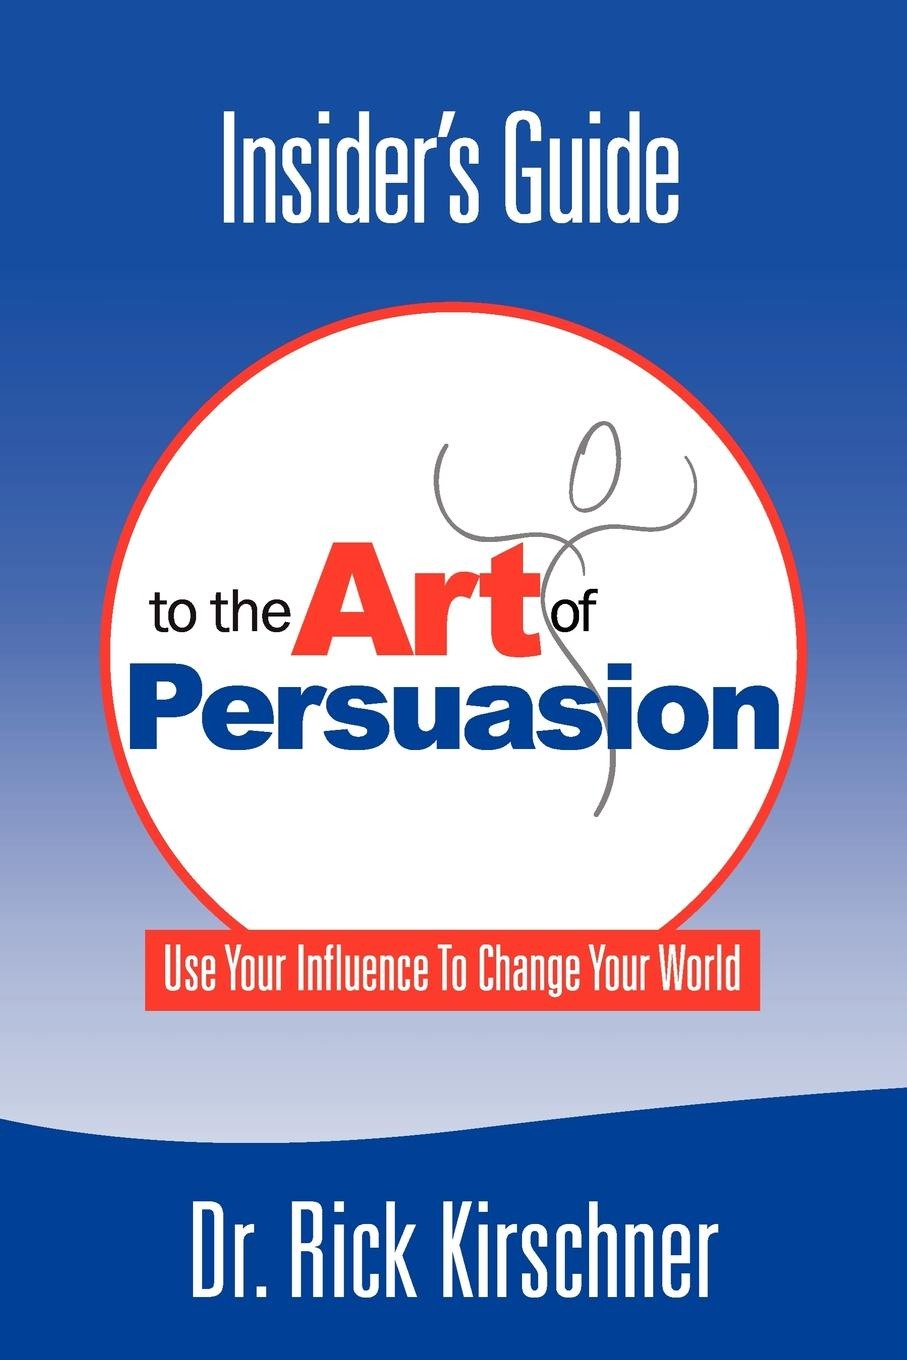 Rick Kirschner Insider.s Guide to the Art of Persuasion dave lakhani subliminal persuasion influence